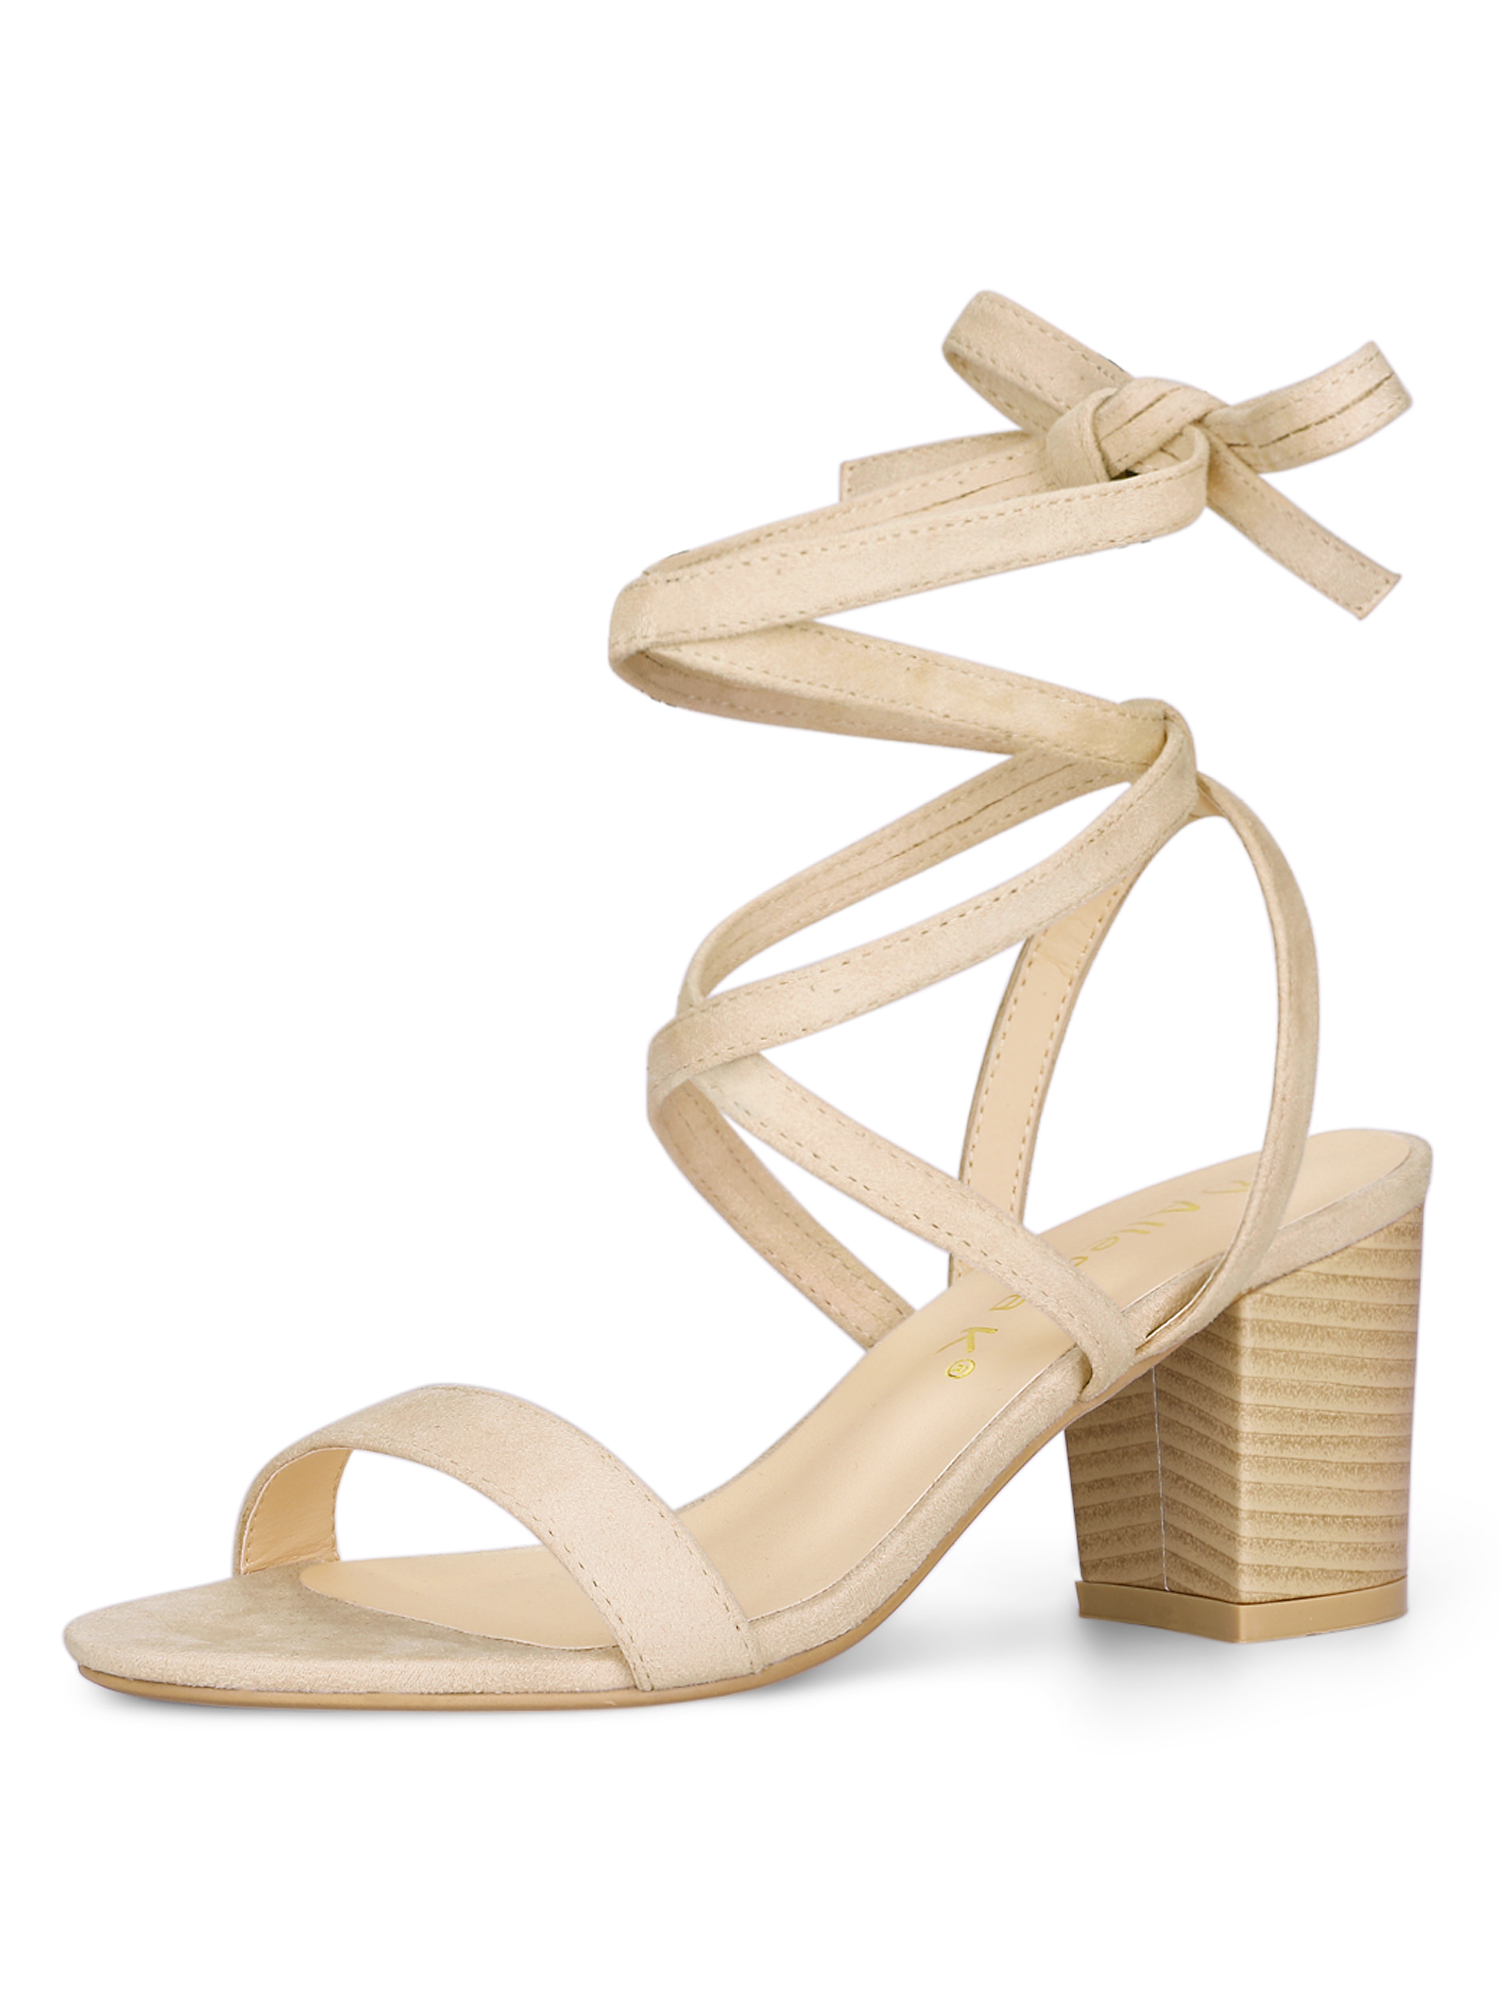 YFL01162-4 Ladies Open Toe Mid Heel Lace Up Sandals Beige/US 9